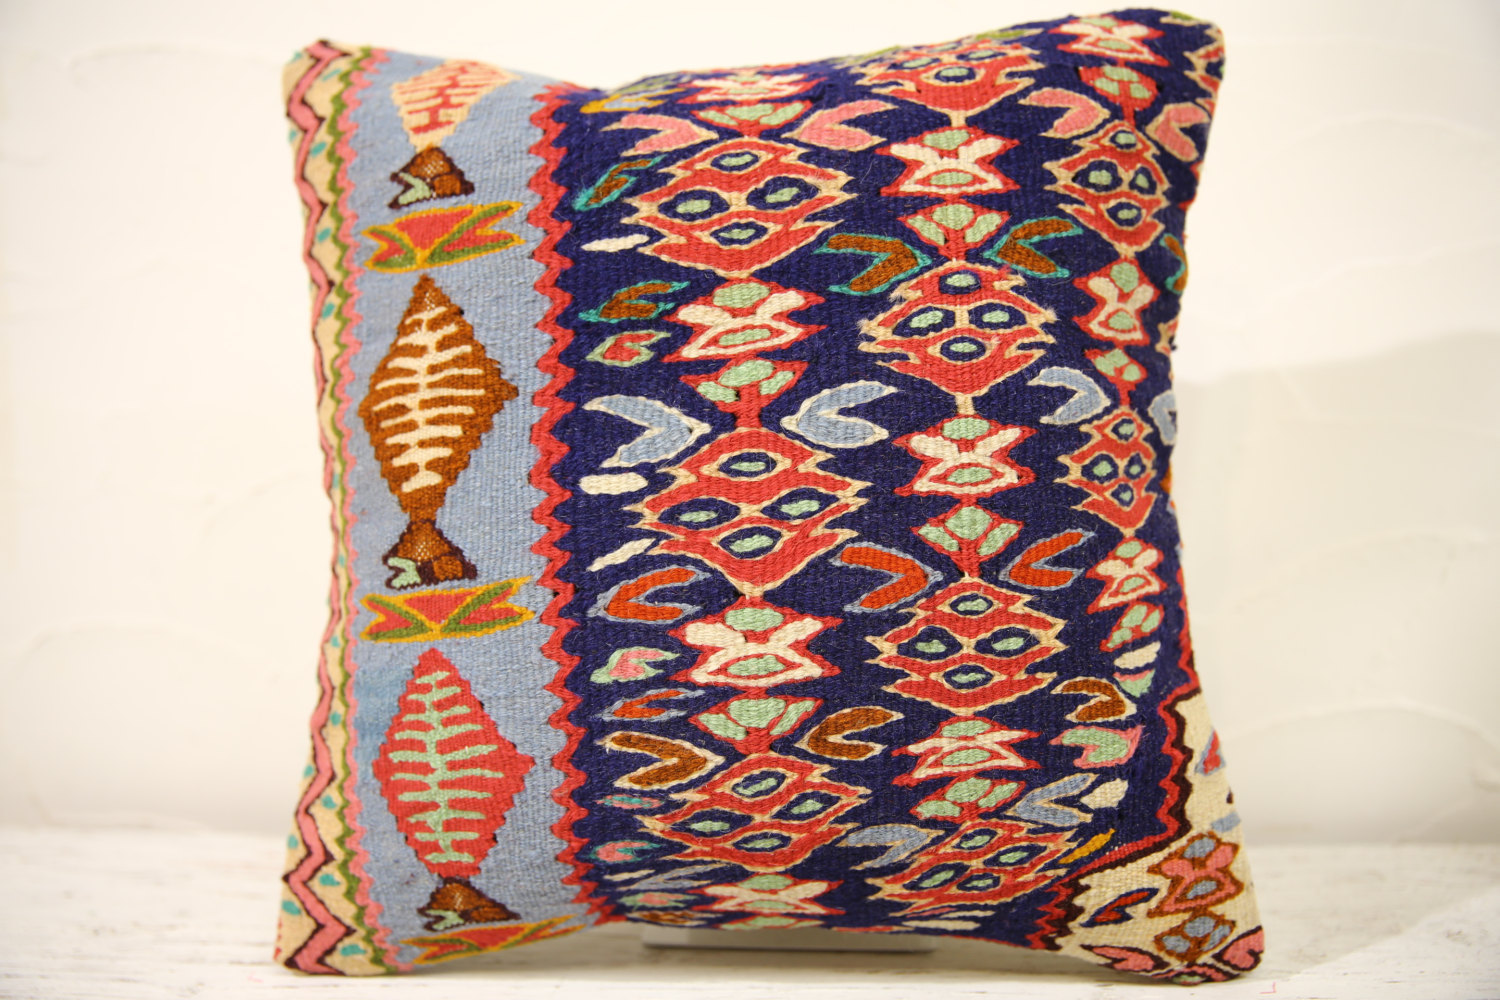 Kilim Pillows | 16x16 | Decorative Pillows | 839 | Accent Pillows , turkish pill